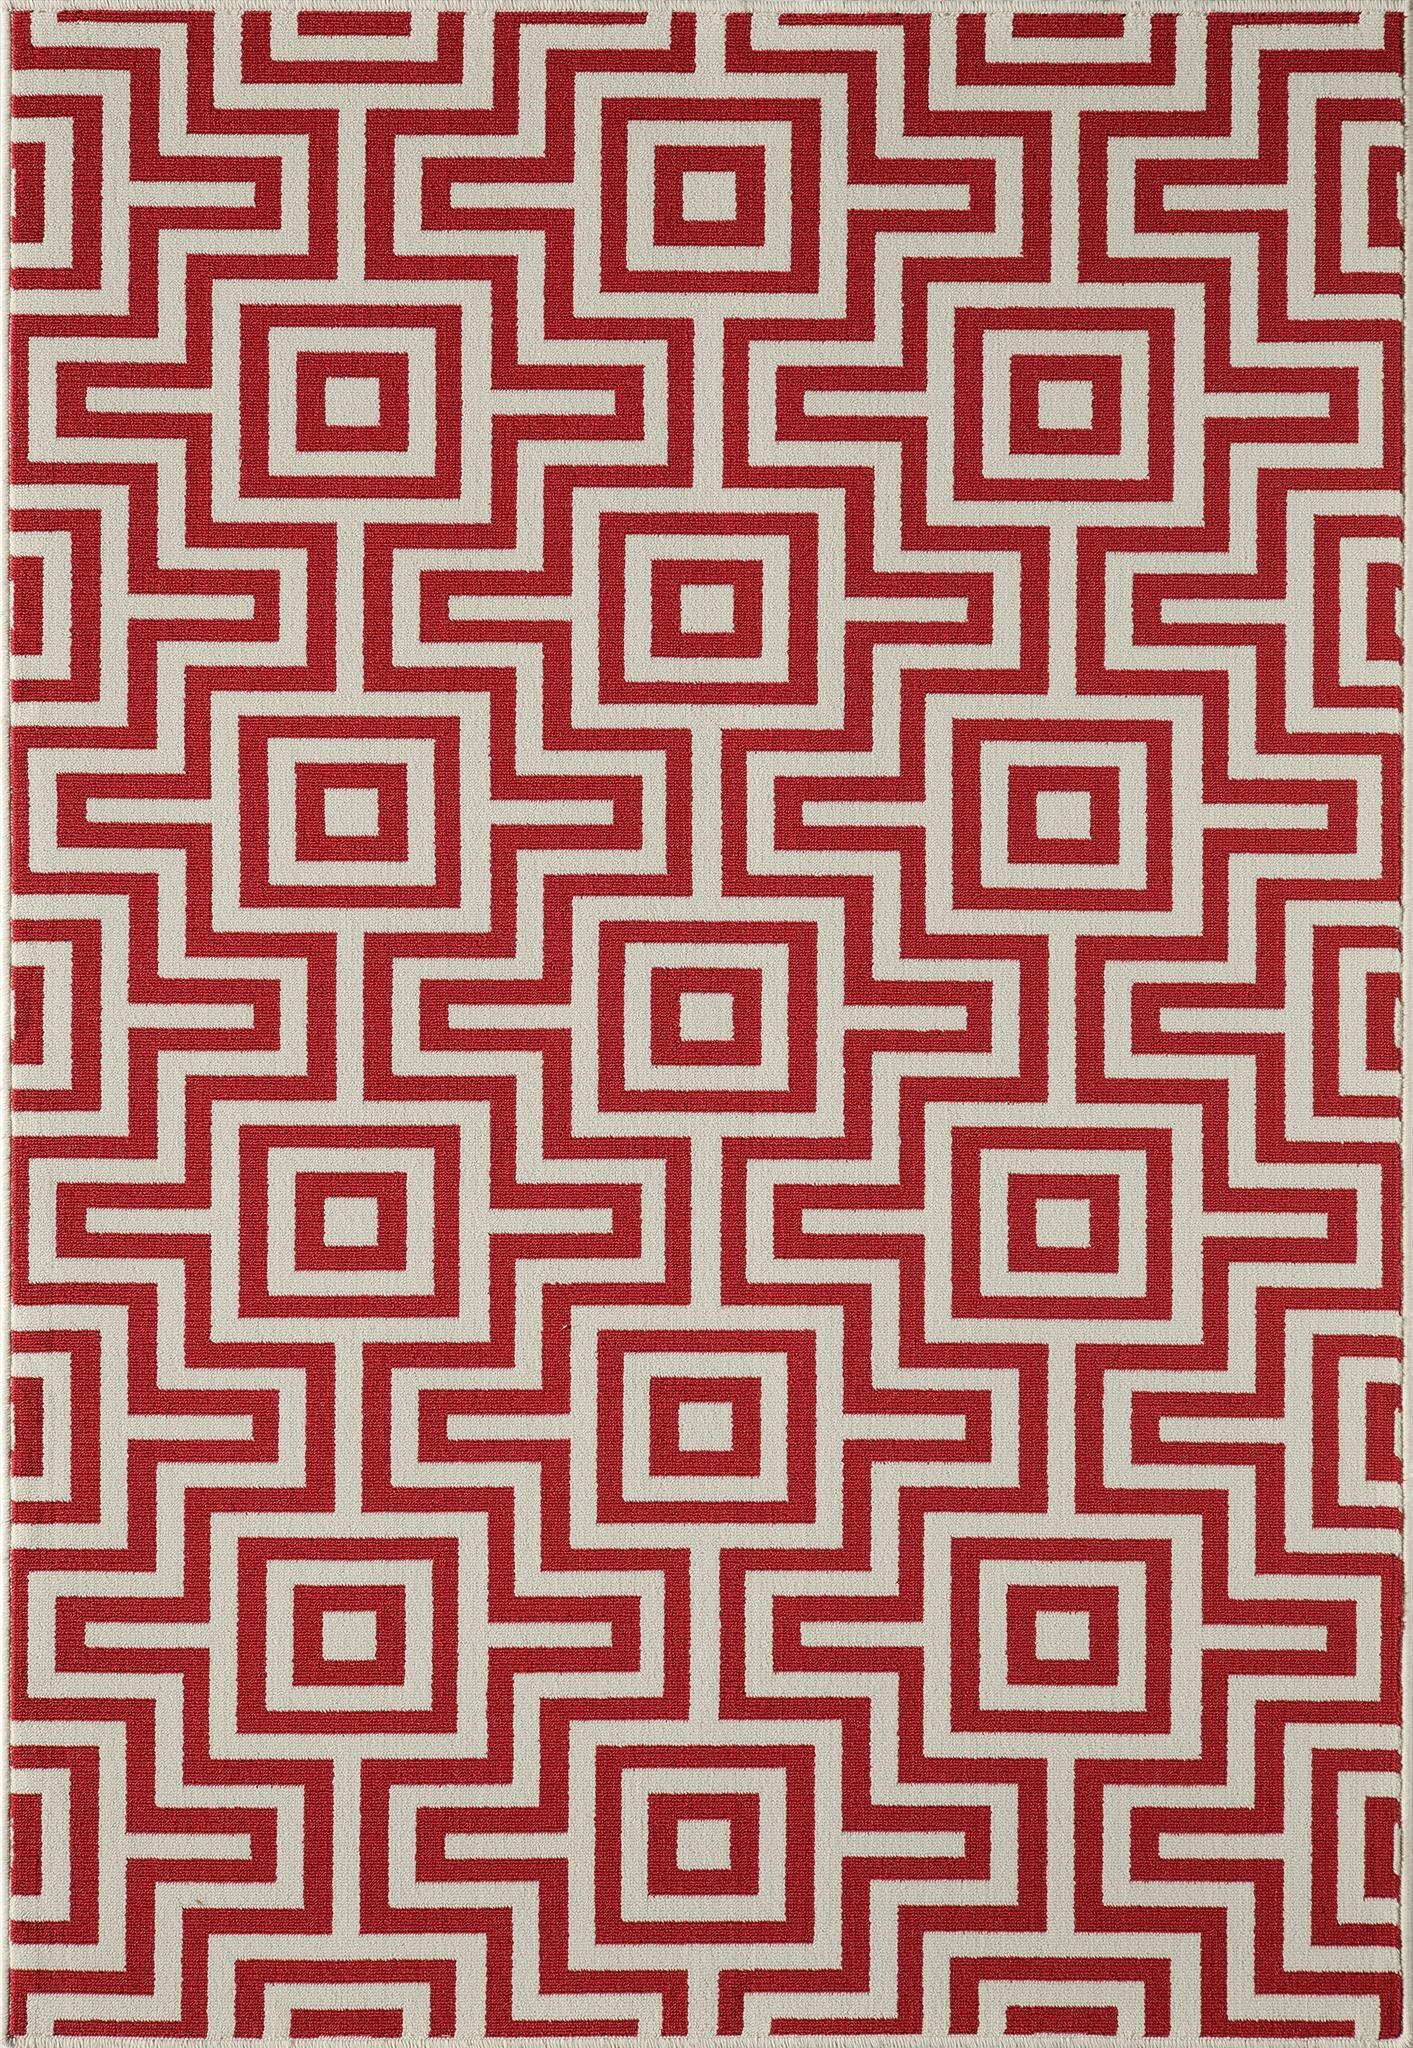 Rahul Hand-Woven Red Indoor/Outdoor Area Rug Rug Size: 5'3